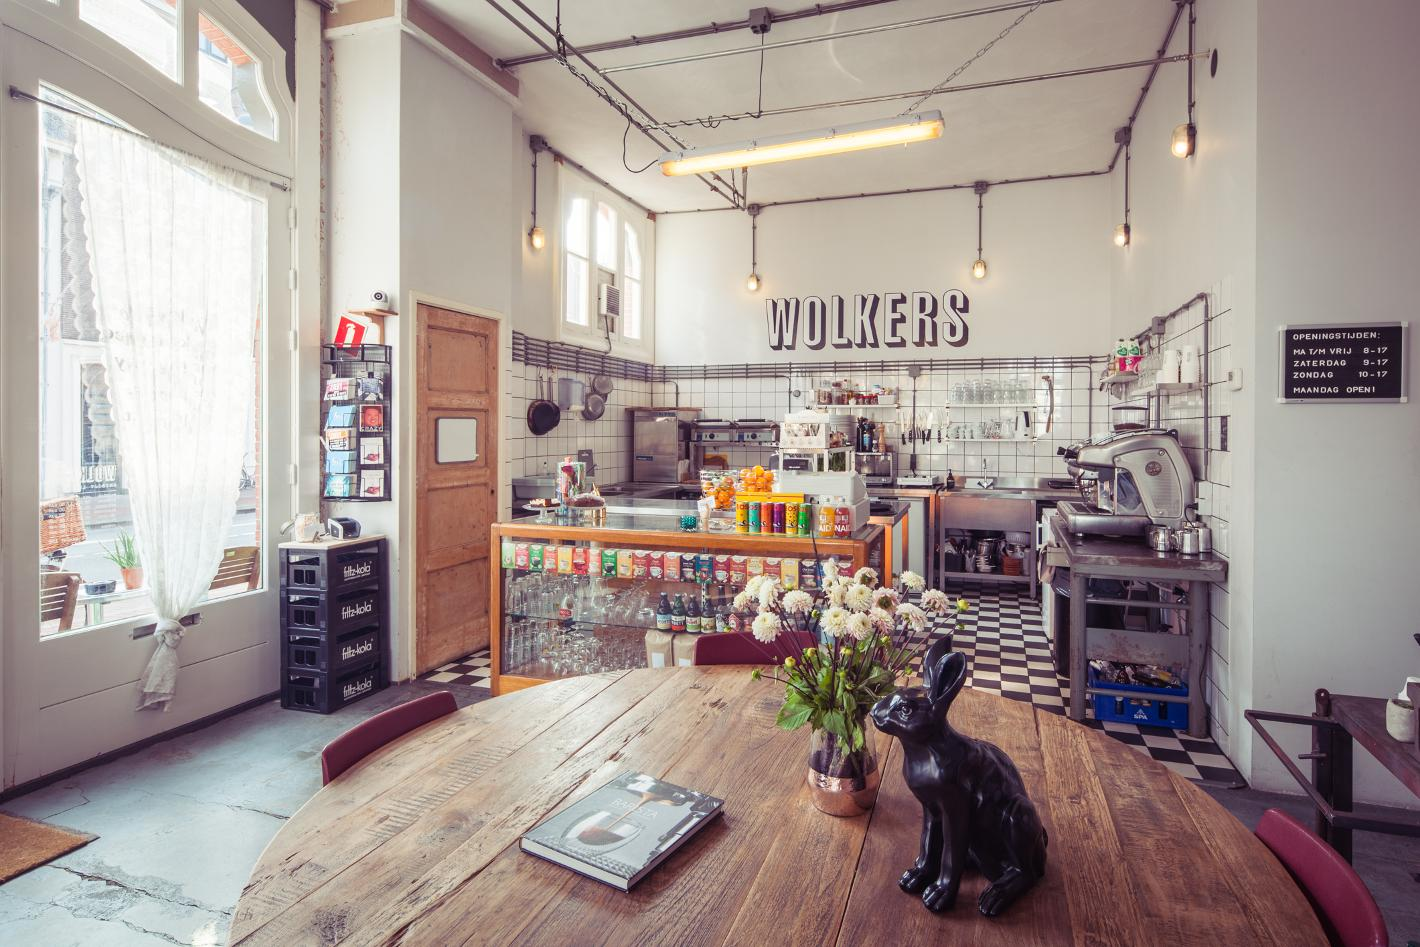 Photo Bar Wolkers in Haarlem, Eat & drink, Coffee, Lunch, Drink - #1